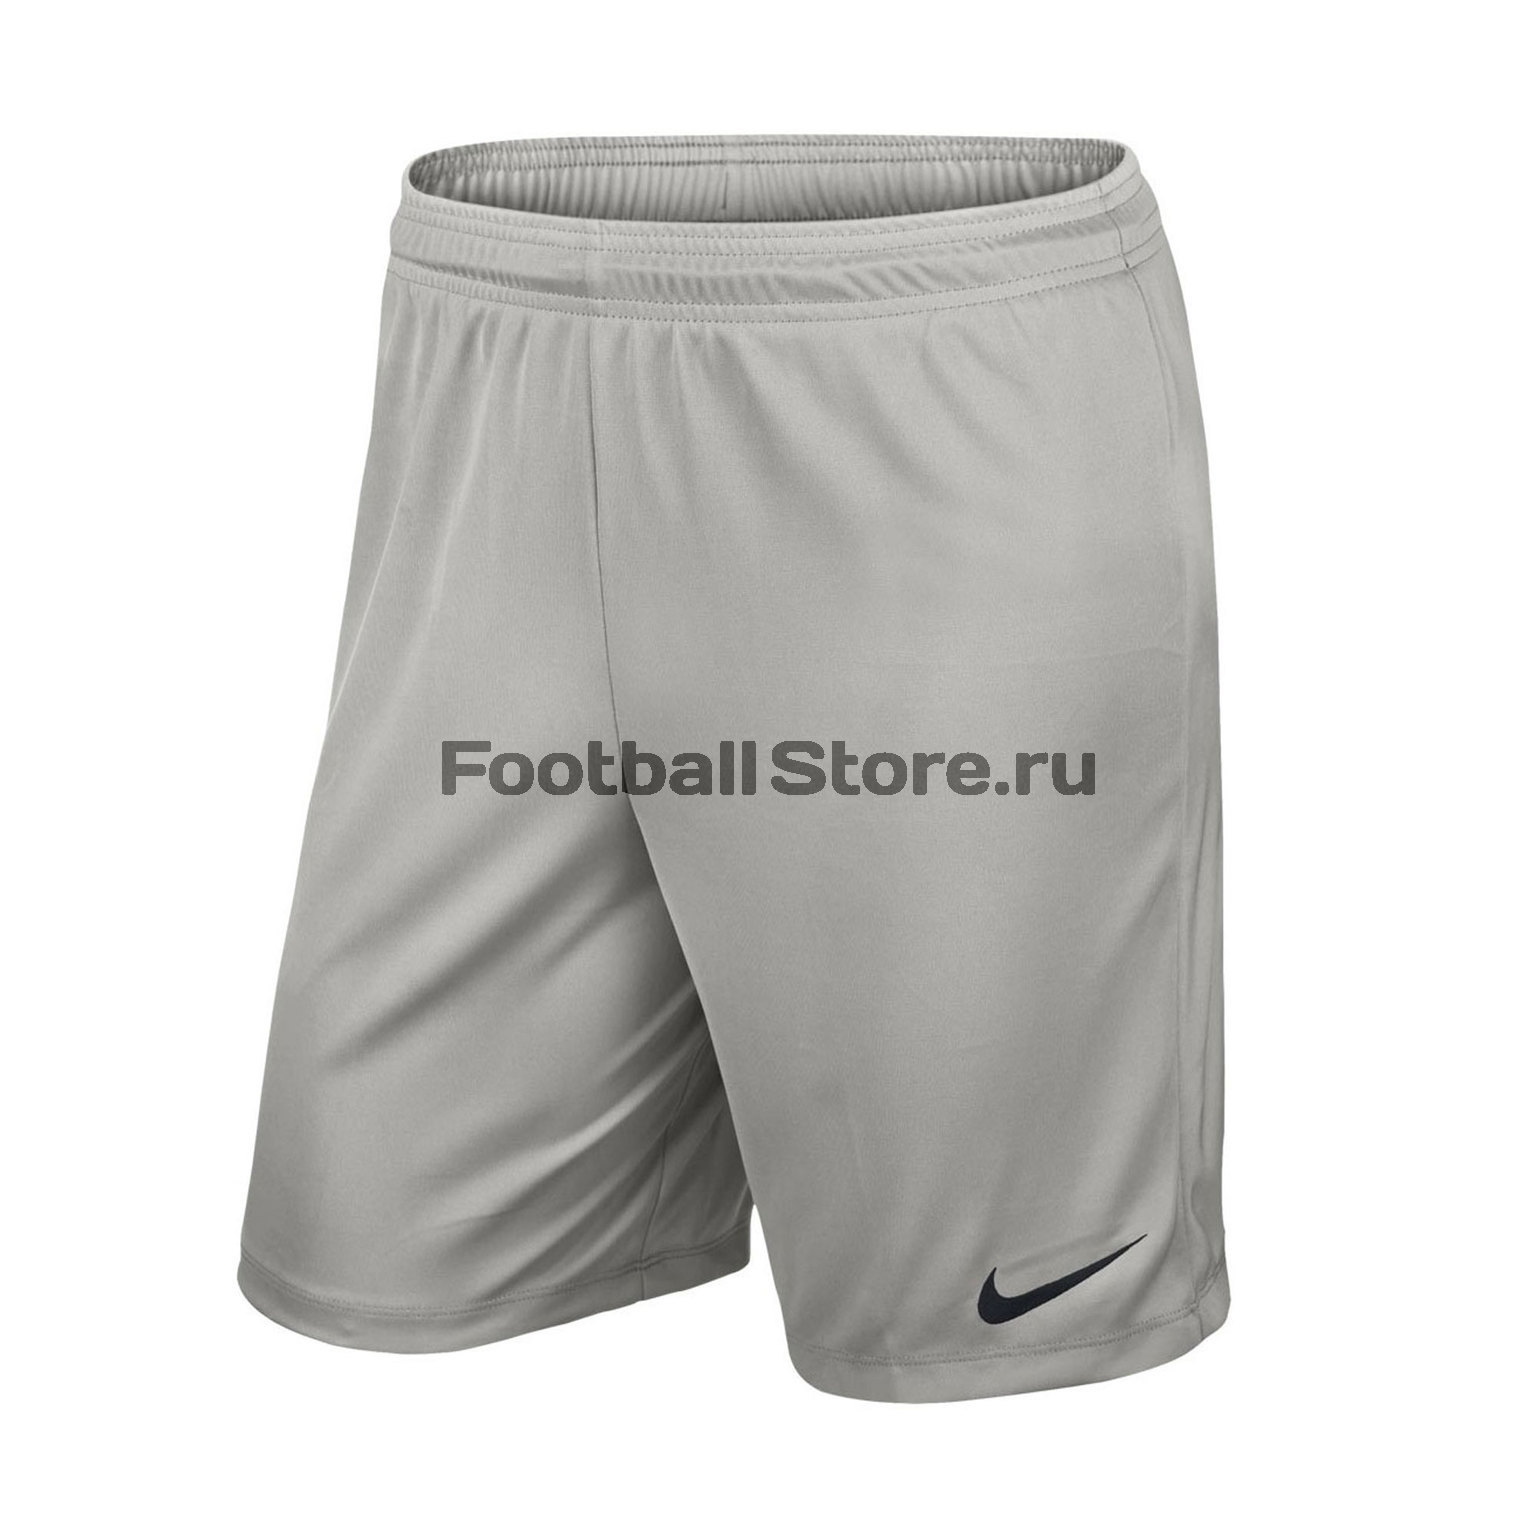 цена на Шорты Nike Park II KNIT Short NB 725887-057